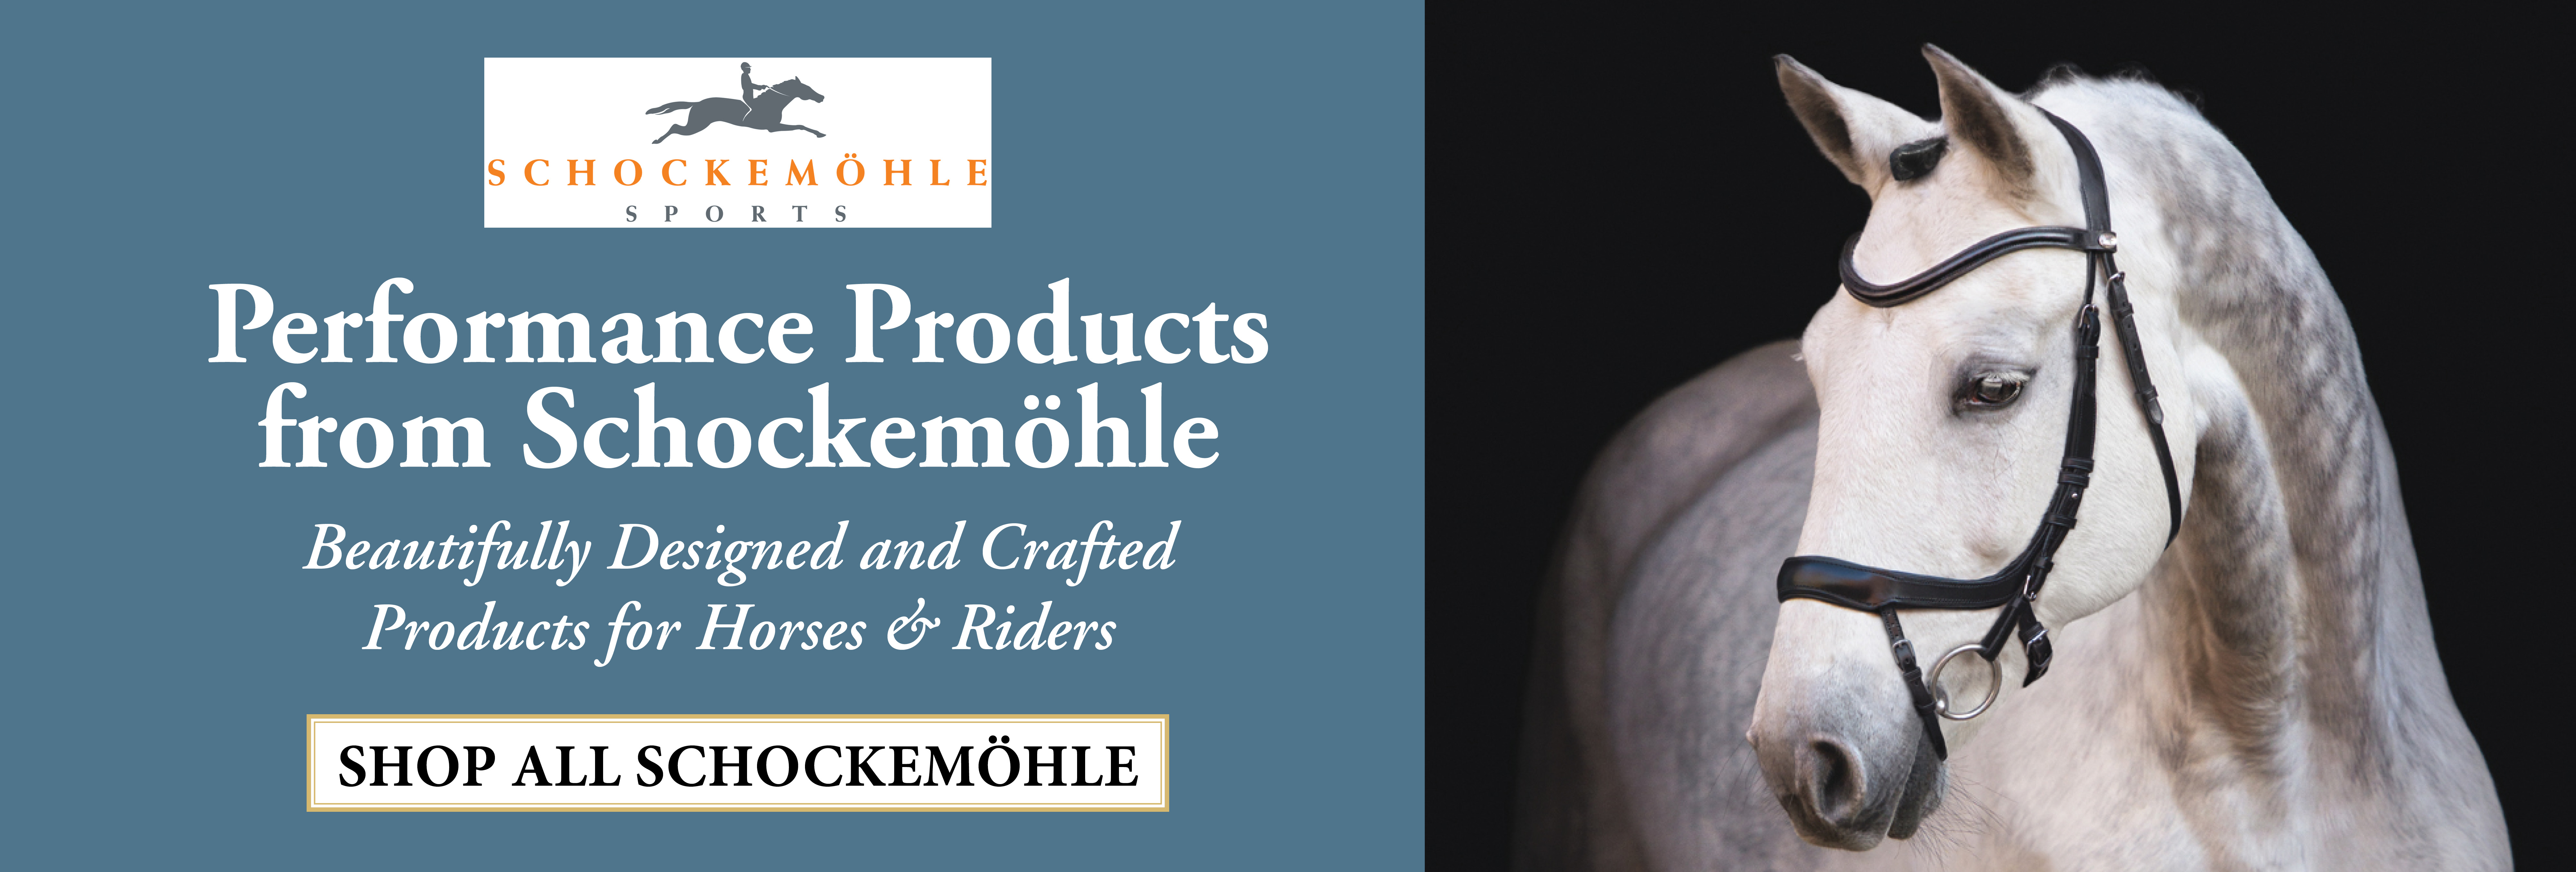 Shop Schockemohle Tack & Apparel Now